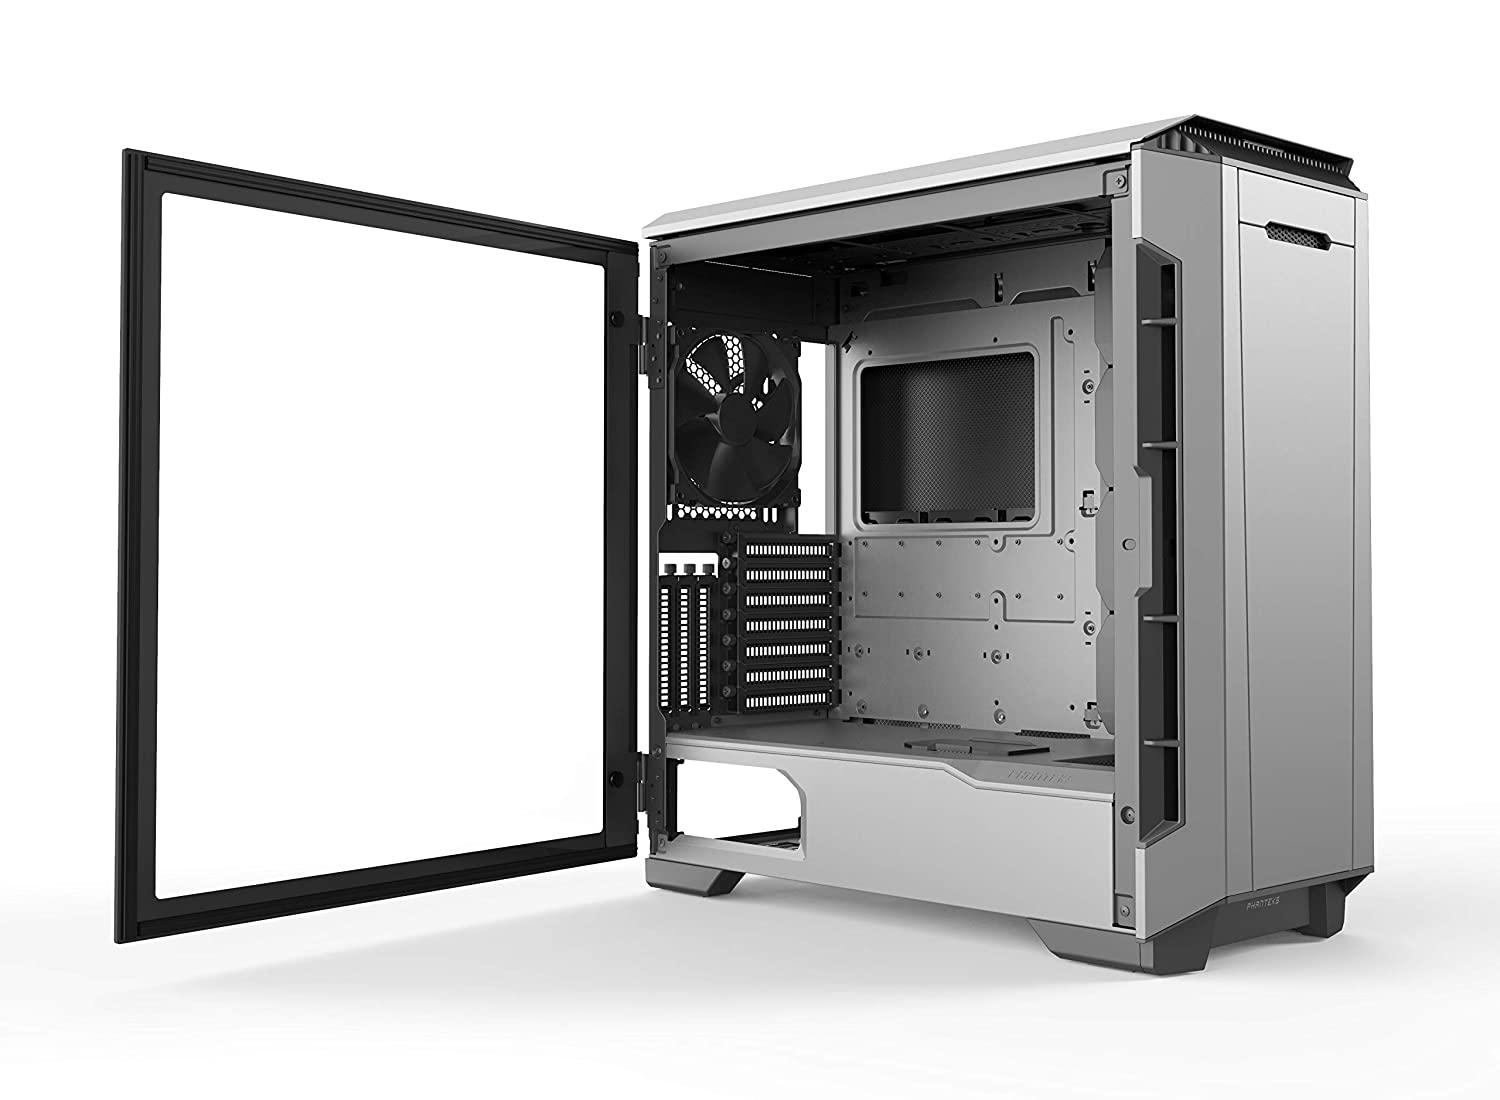 PWM hub Phanteks Eclipse P600S Hybrid Silent and Performance ATX Chassis -Tempered Glass Glacier White Sound dampening Panels Dual System Support Fabric Filter